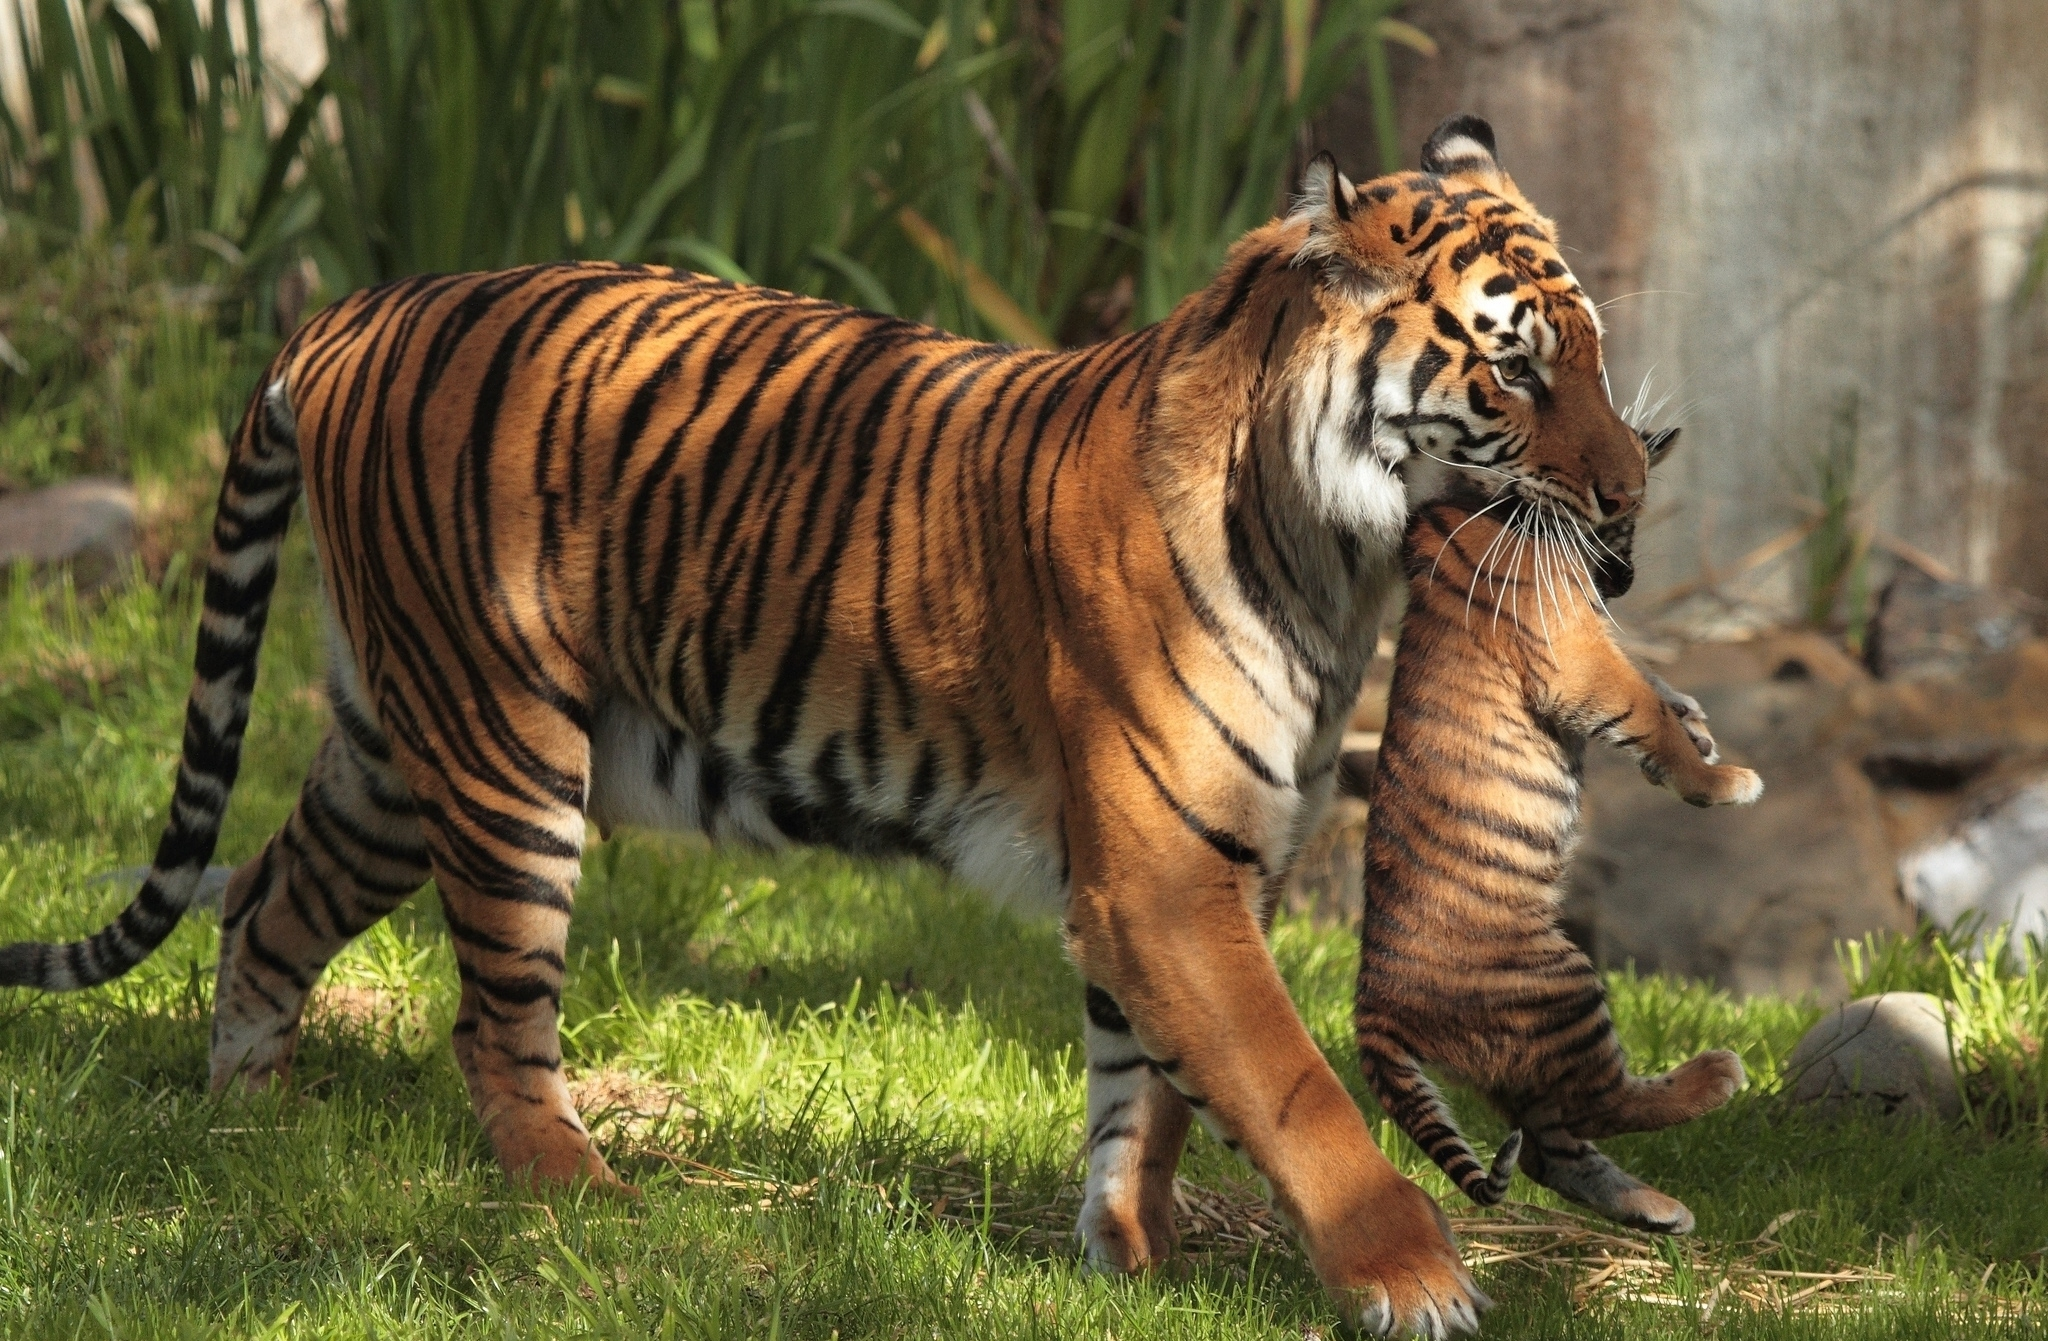 Animales Fondos De Escritorio Hd: Tiger Wallpaper Cub Baby - HD Desktop Wallpapers